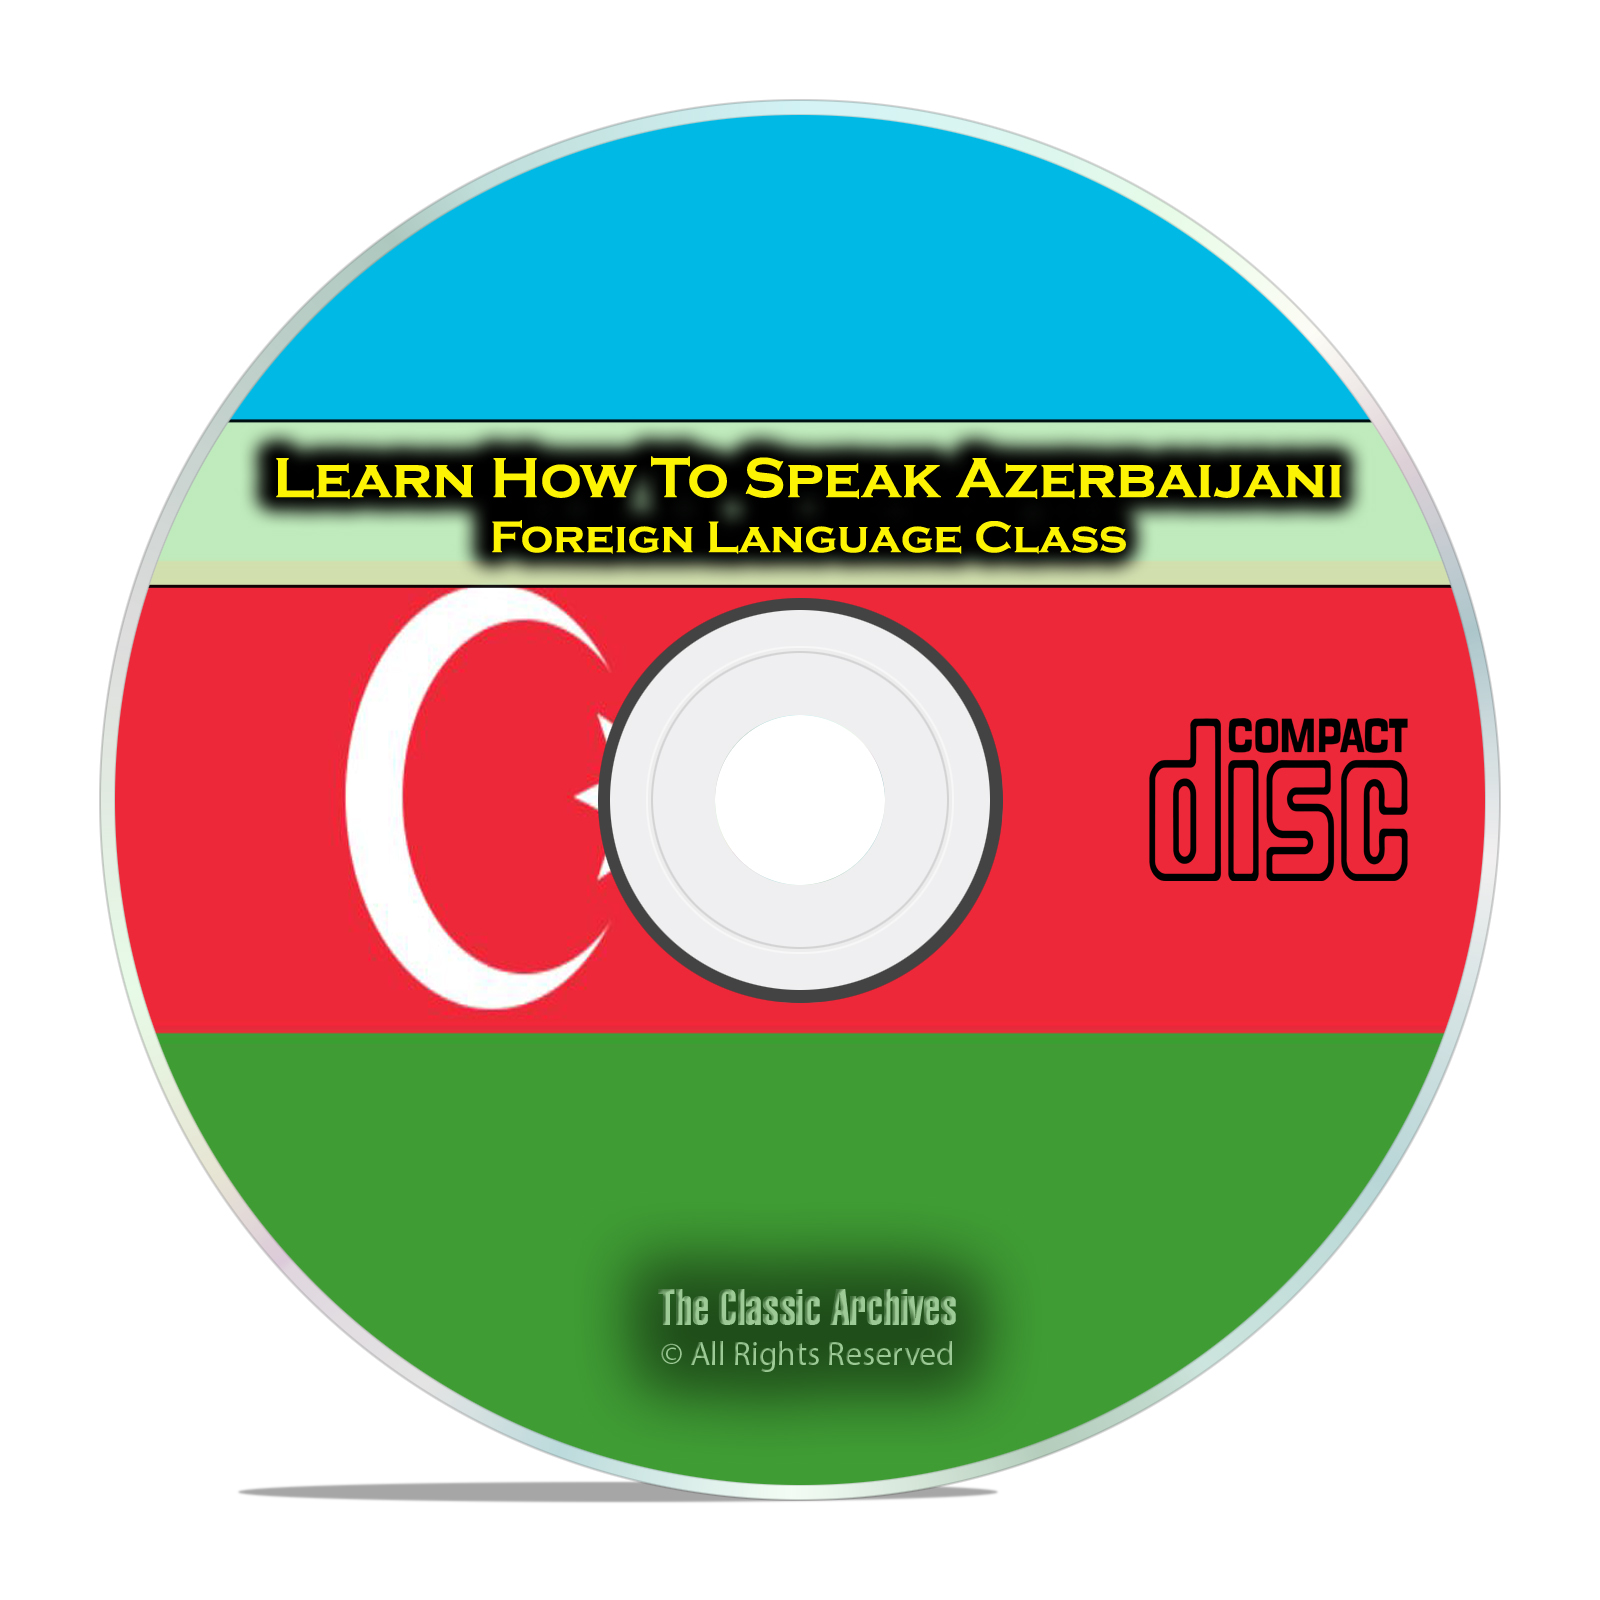 Learn How To Speak Azerbaijani, Fast Foreign Language Training Course CD